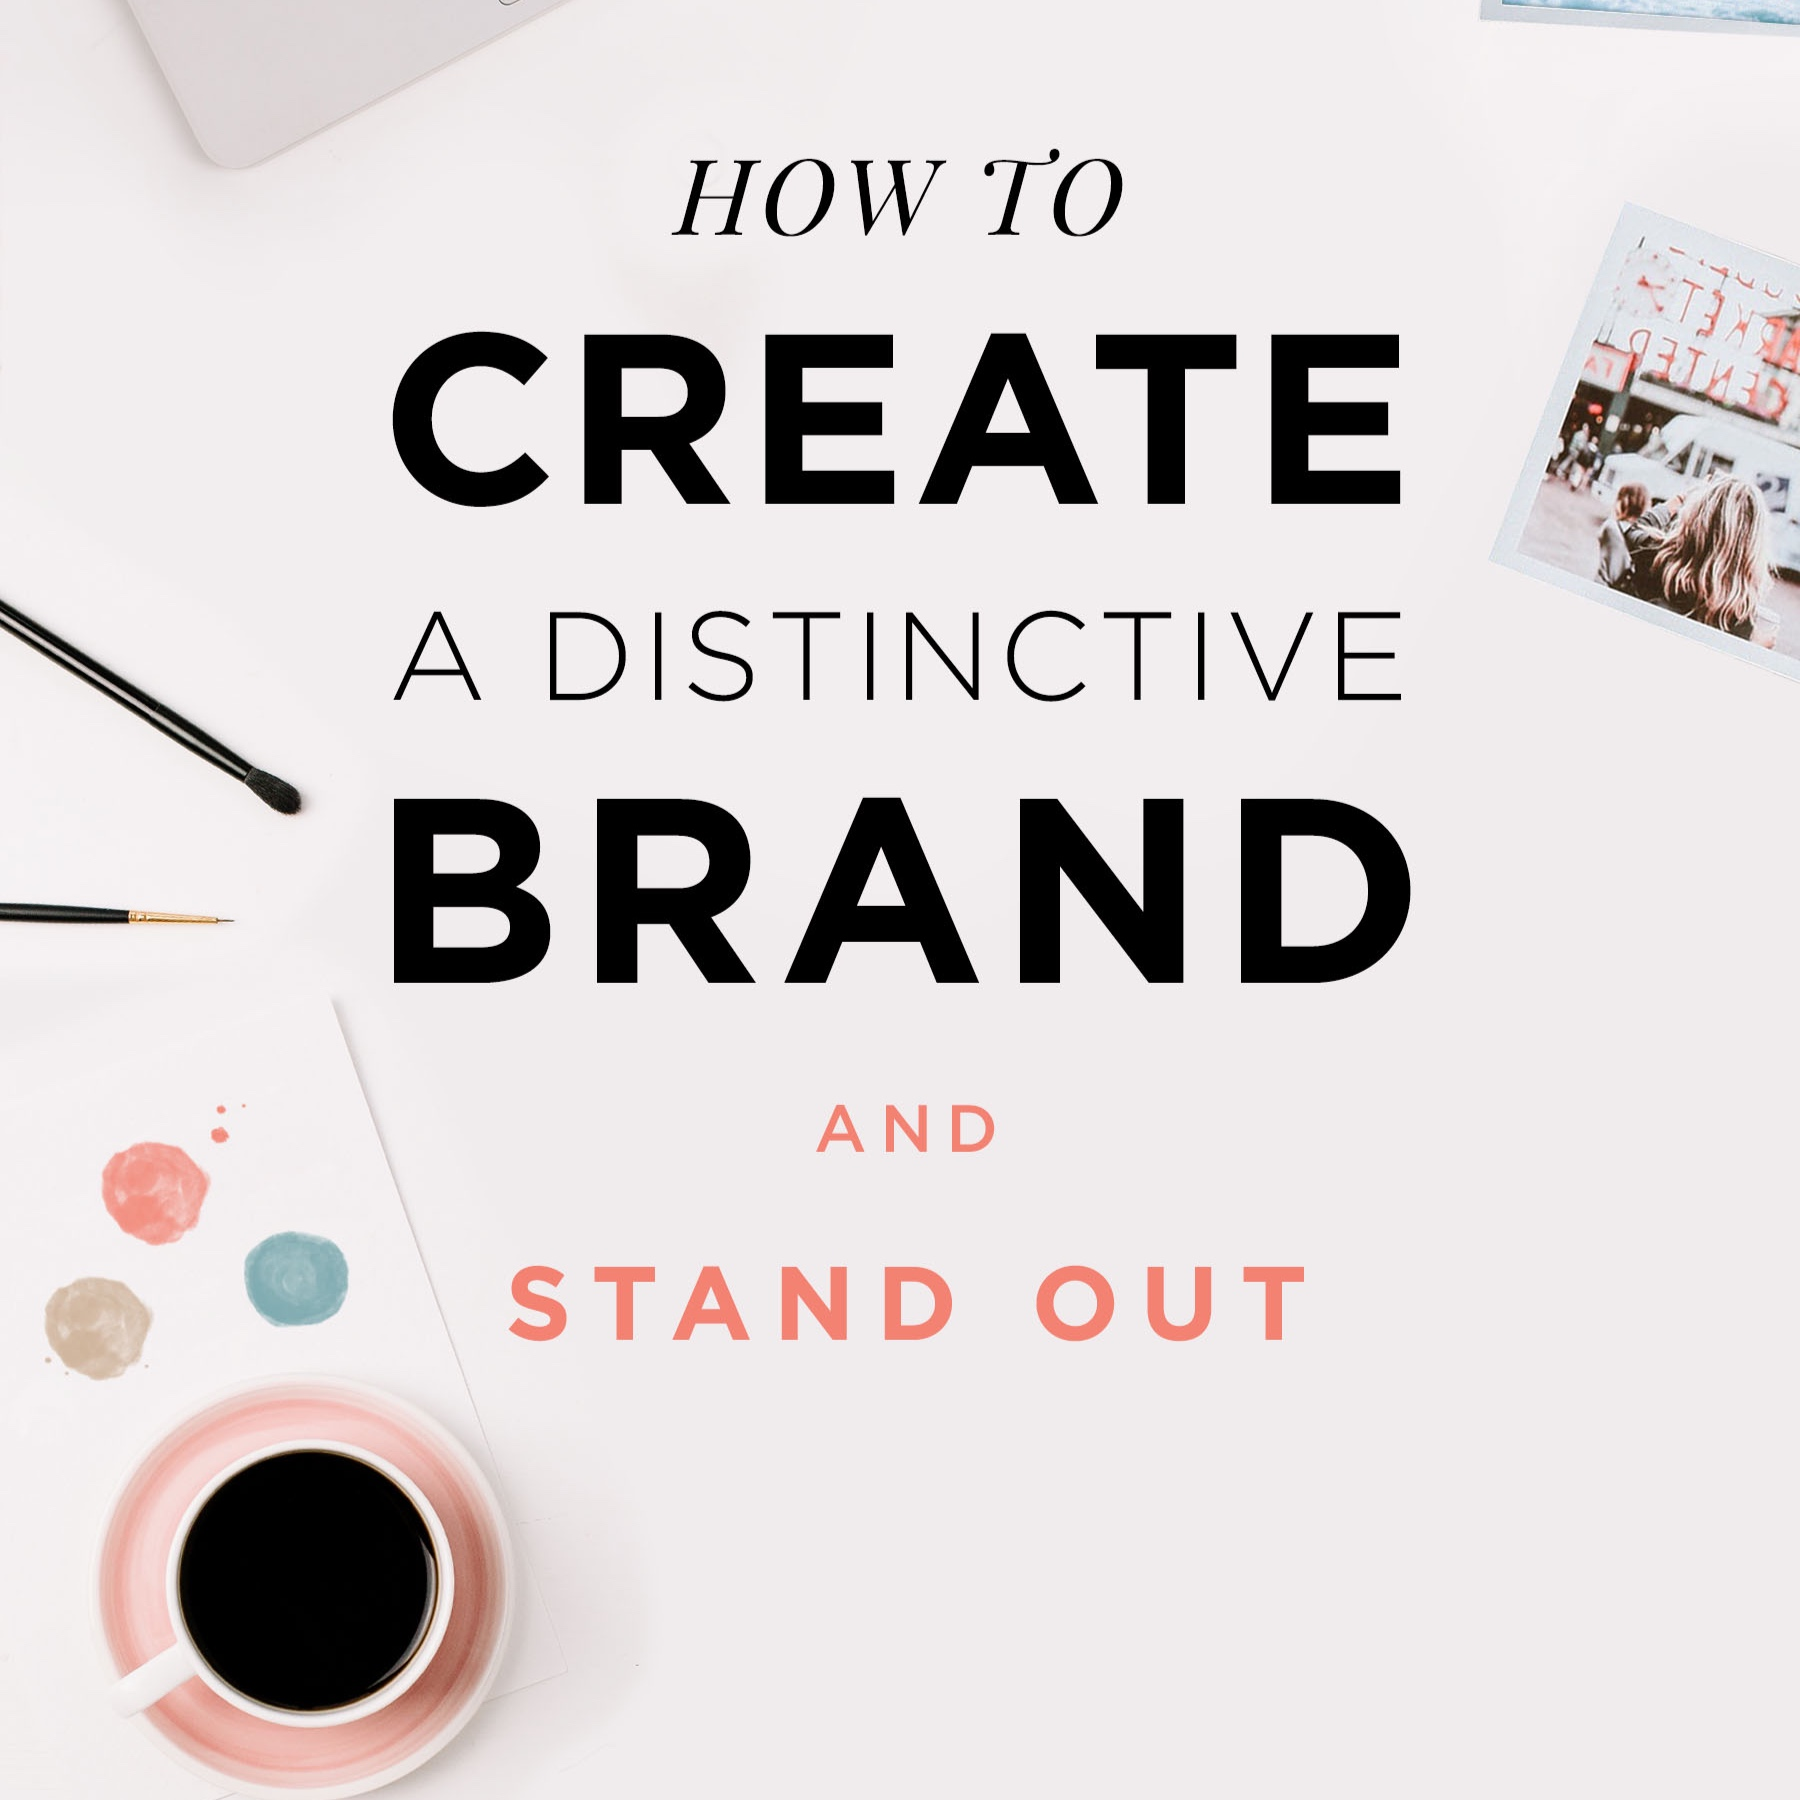 How to create a distinctive brand and stand out!